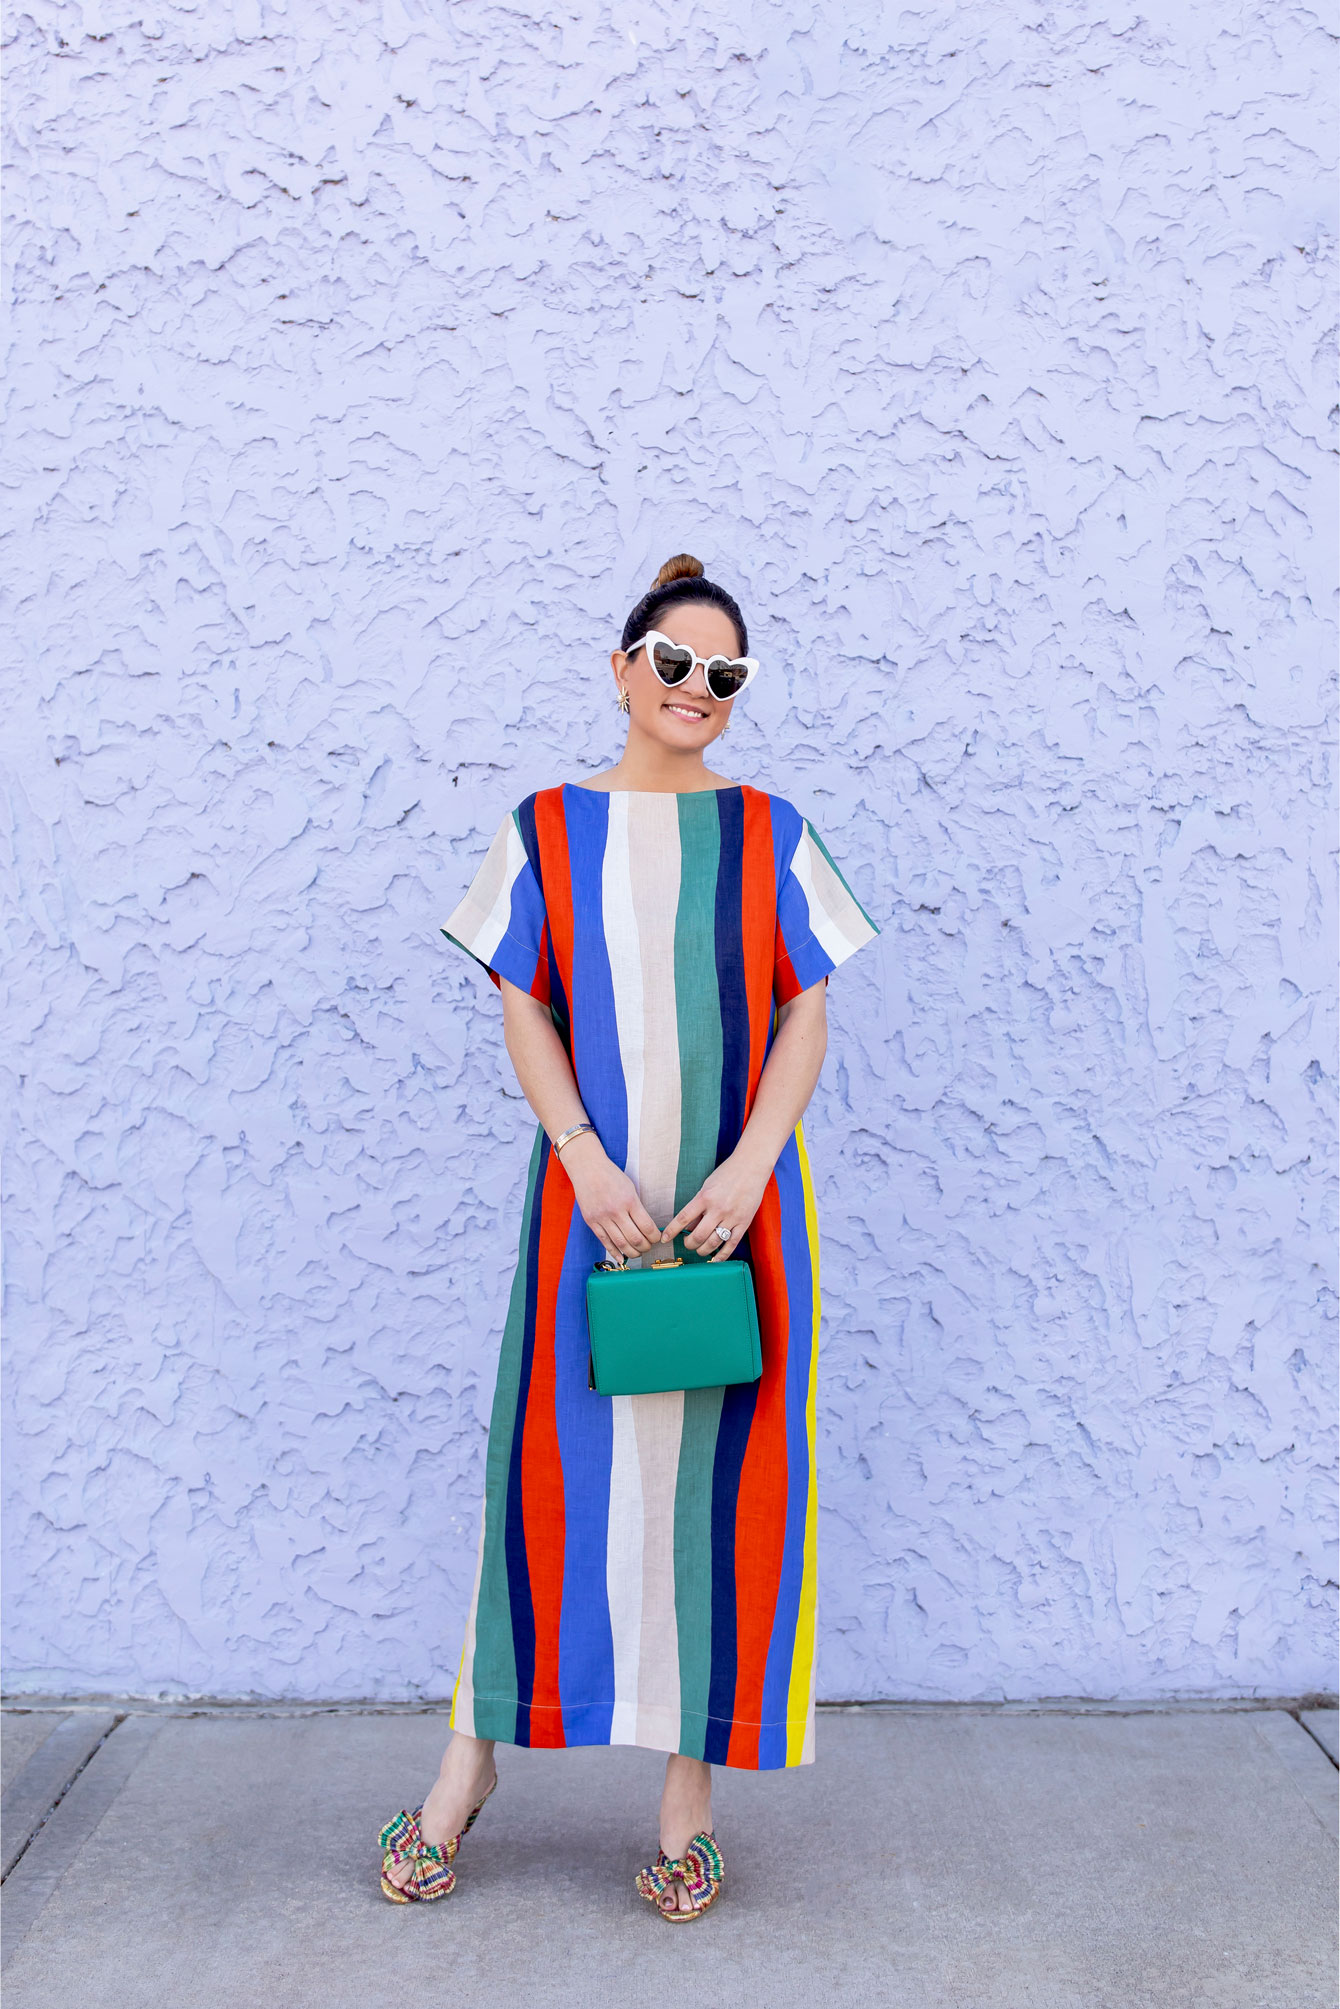 WHIT Colorful Dress